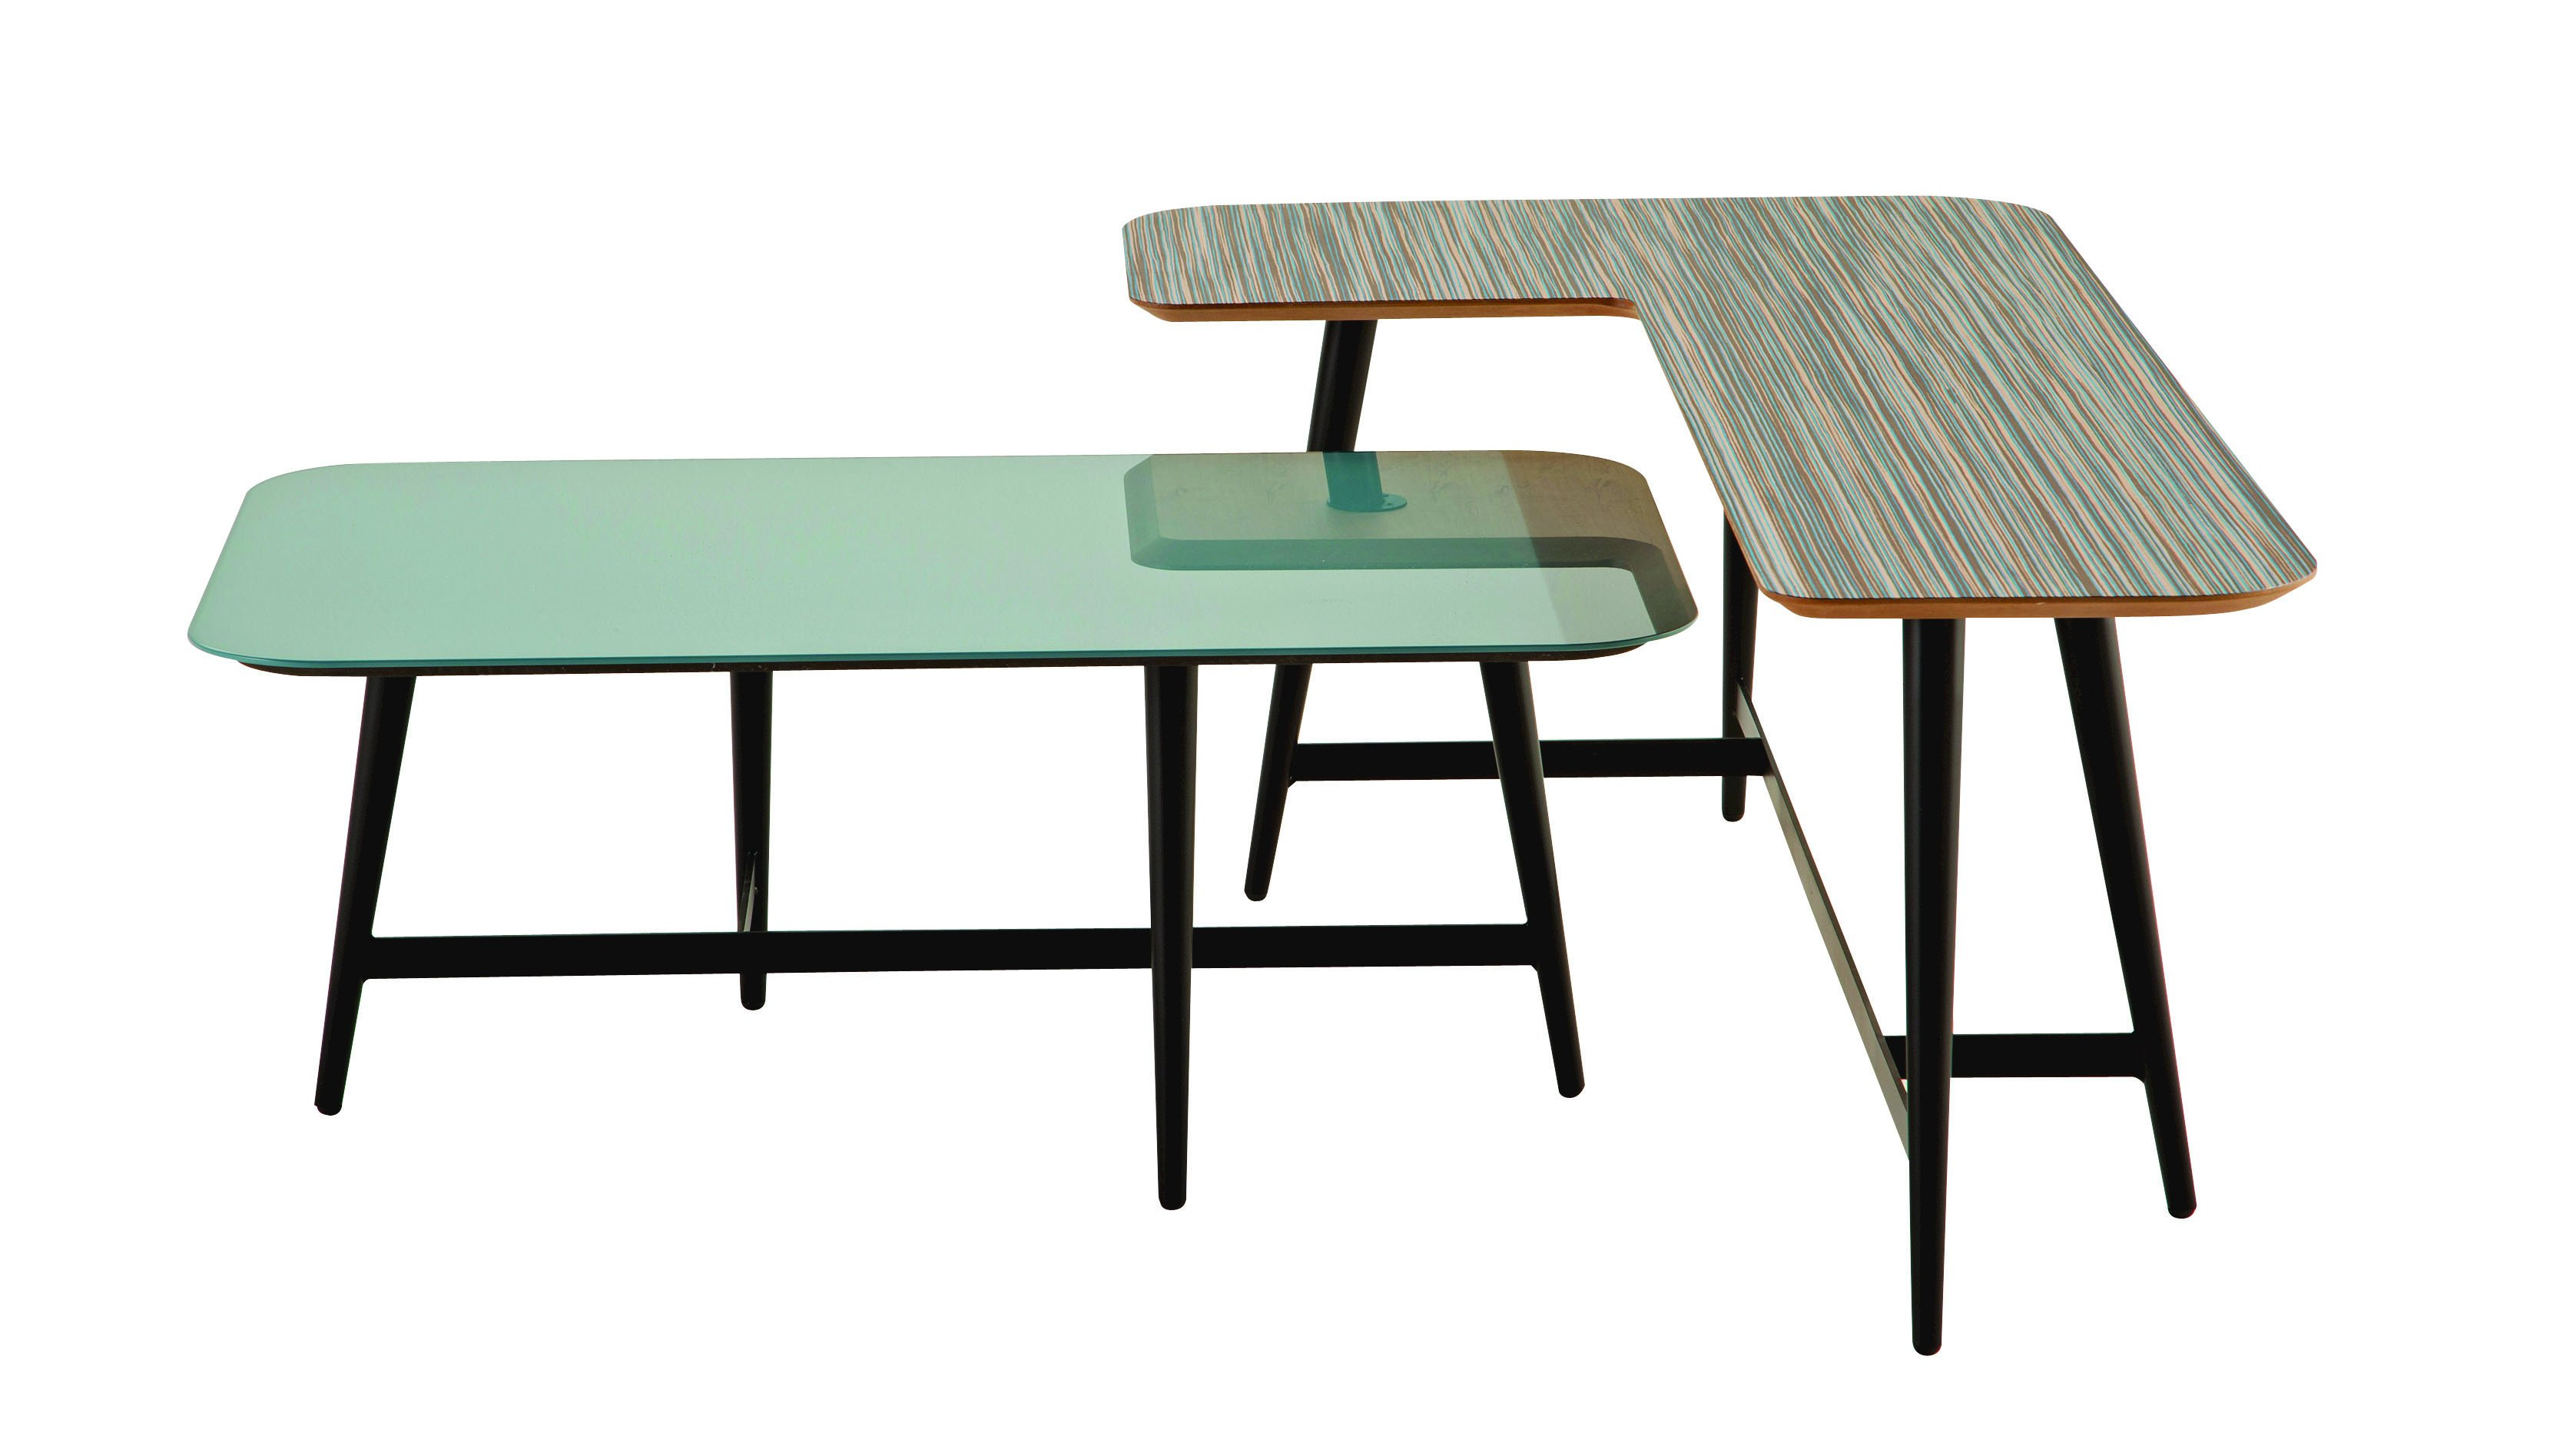 Lacquered Modular Rectangular Coffee Table Octet Les Contemporains Collection By Roche Bobois